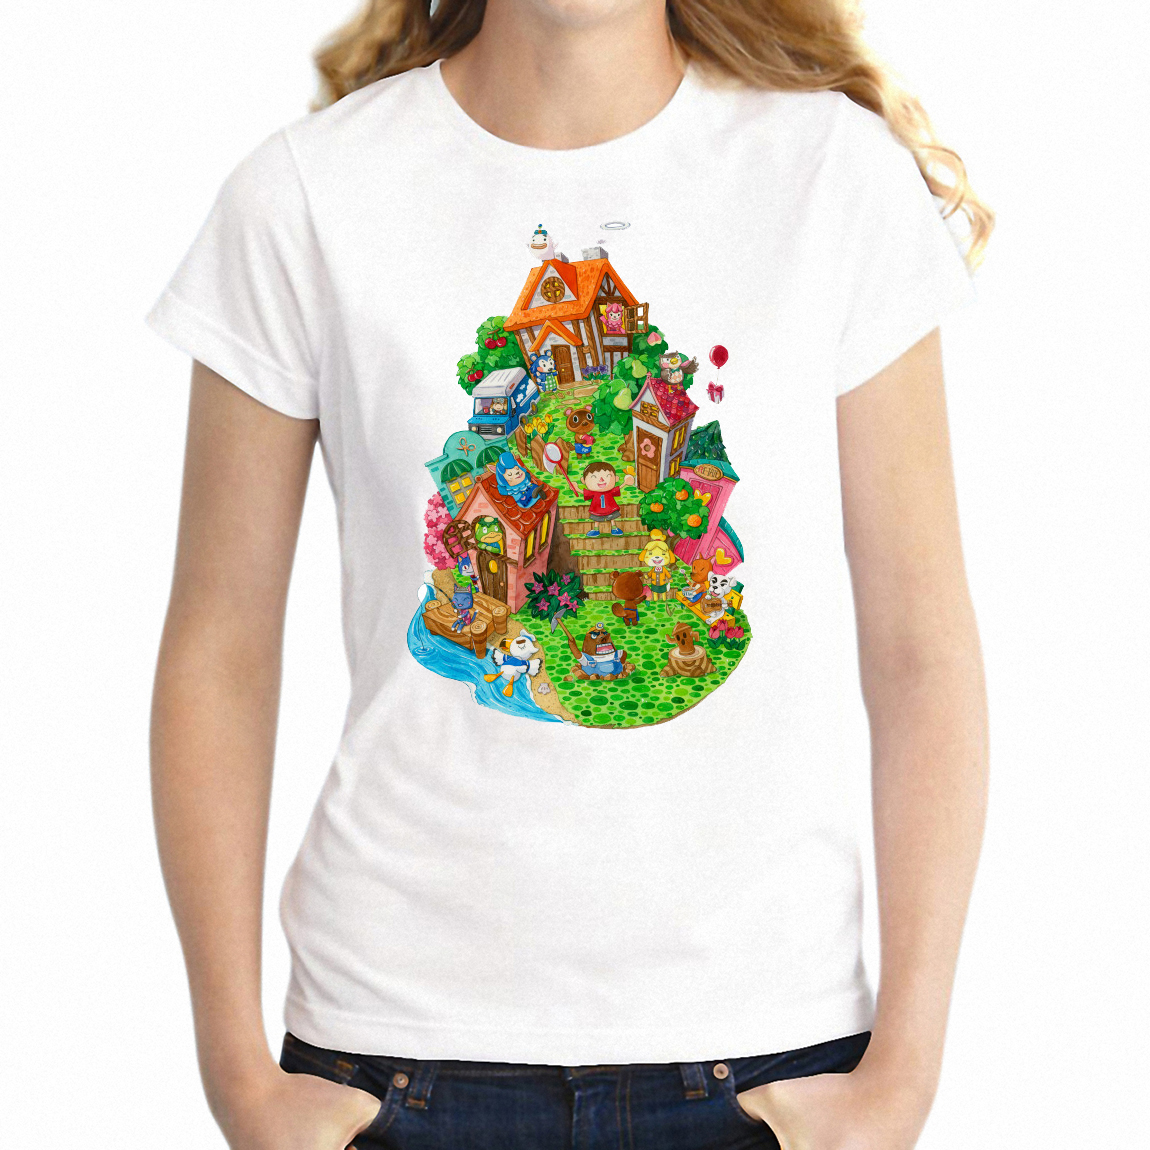 9da37fd0 Cheap T-Shirts, Buy Directly from China Suppliers:Women's T Shirt Animal  Crossing